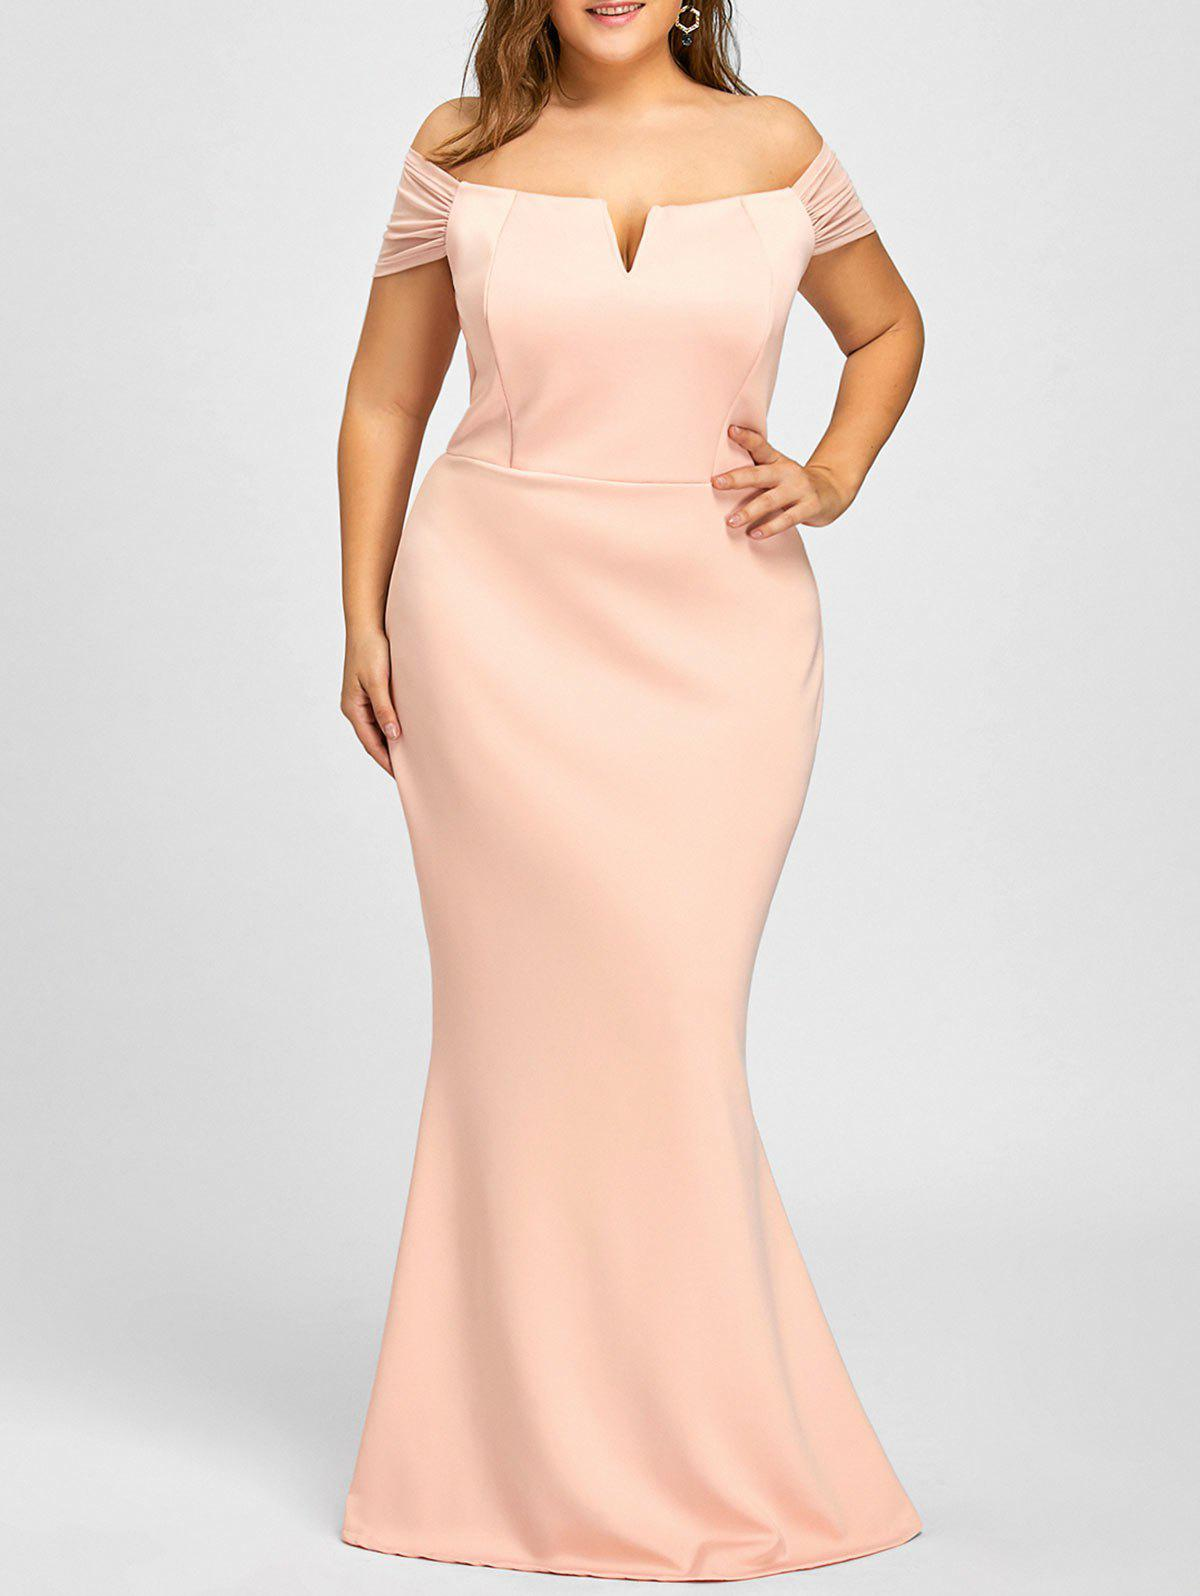 Plus Size Mermaid Off The Shoulder Formal DressWOMEN<br><br>Size: 3XL; Color: PINK; Style: Casual; Material: Cotton,Polyester; Silhouette: Trumpet/Mermaid; Dresses Length: Floor-Length; Neckline: Off The Shoulder; Sleeve Length: Short Sleeves; Pattern Type: Solid; With Belt: No; Season: Fall,Spring,Summer,Winter; Weight: 0.7950kg; Package Contents: 1 x Dress;